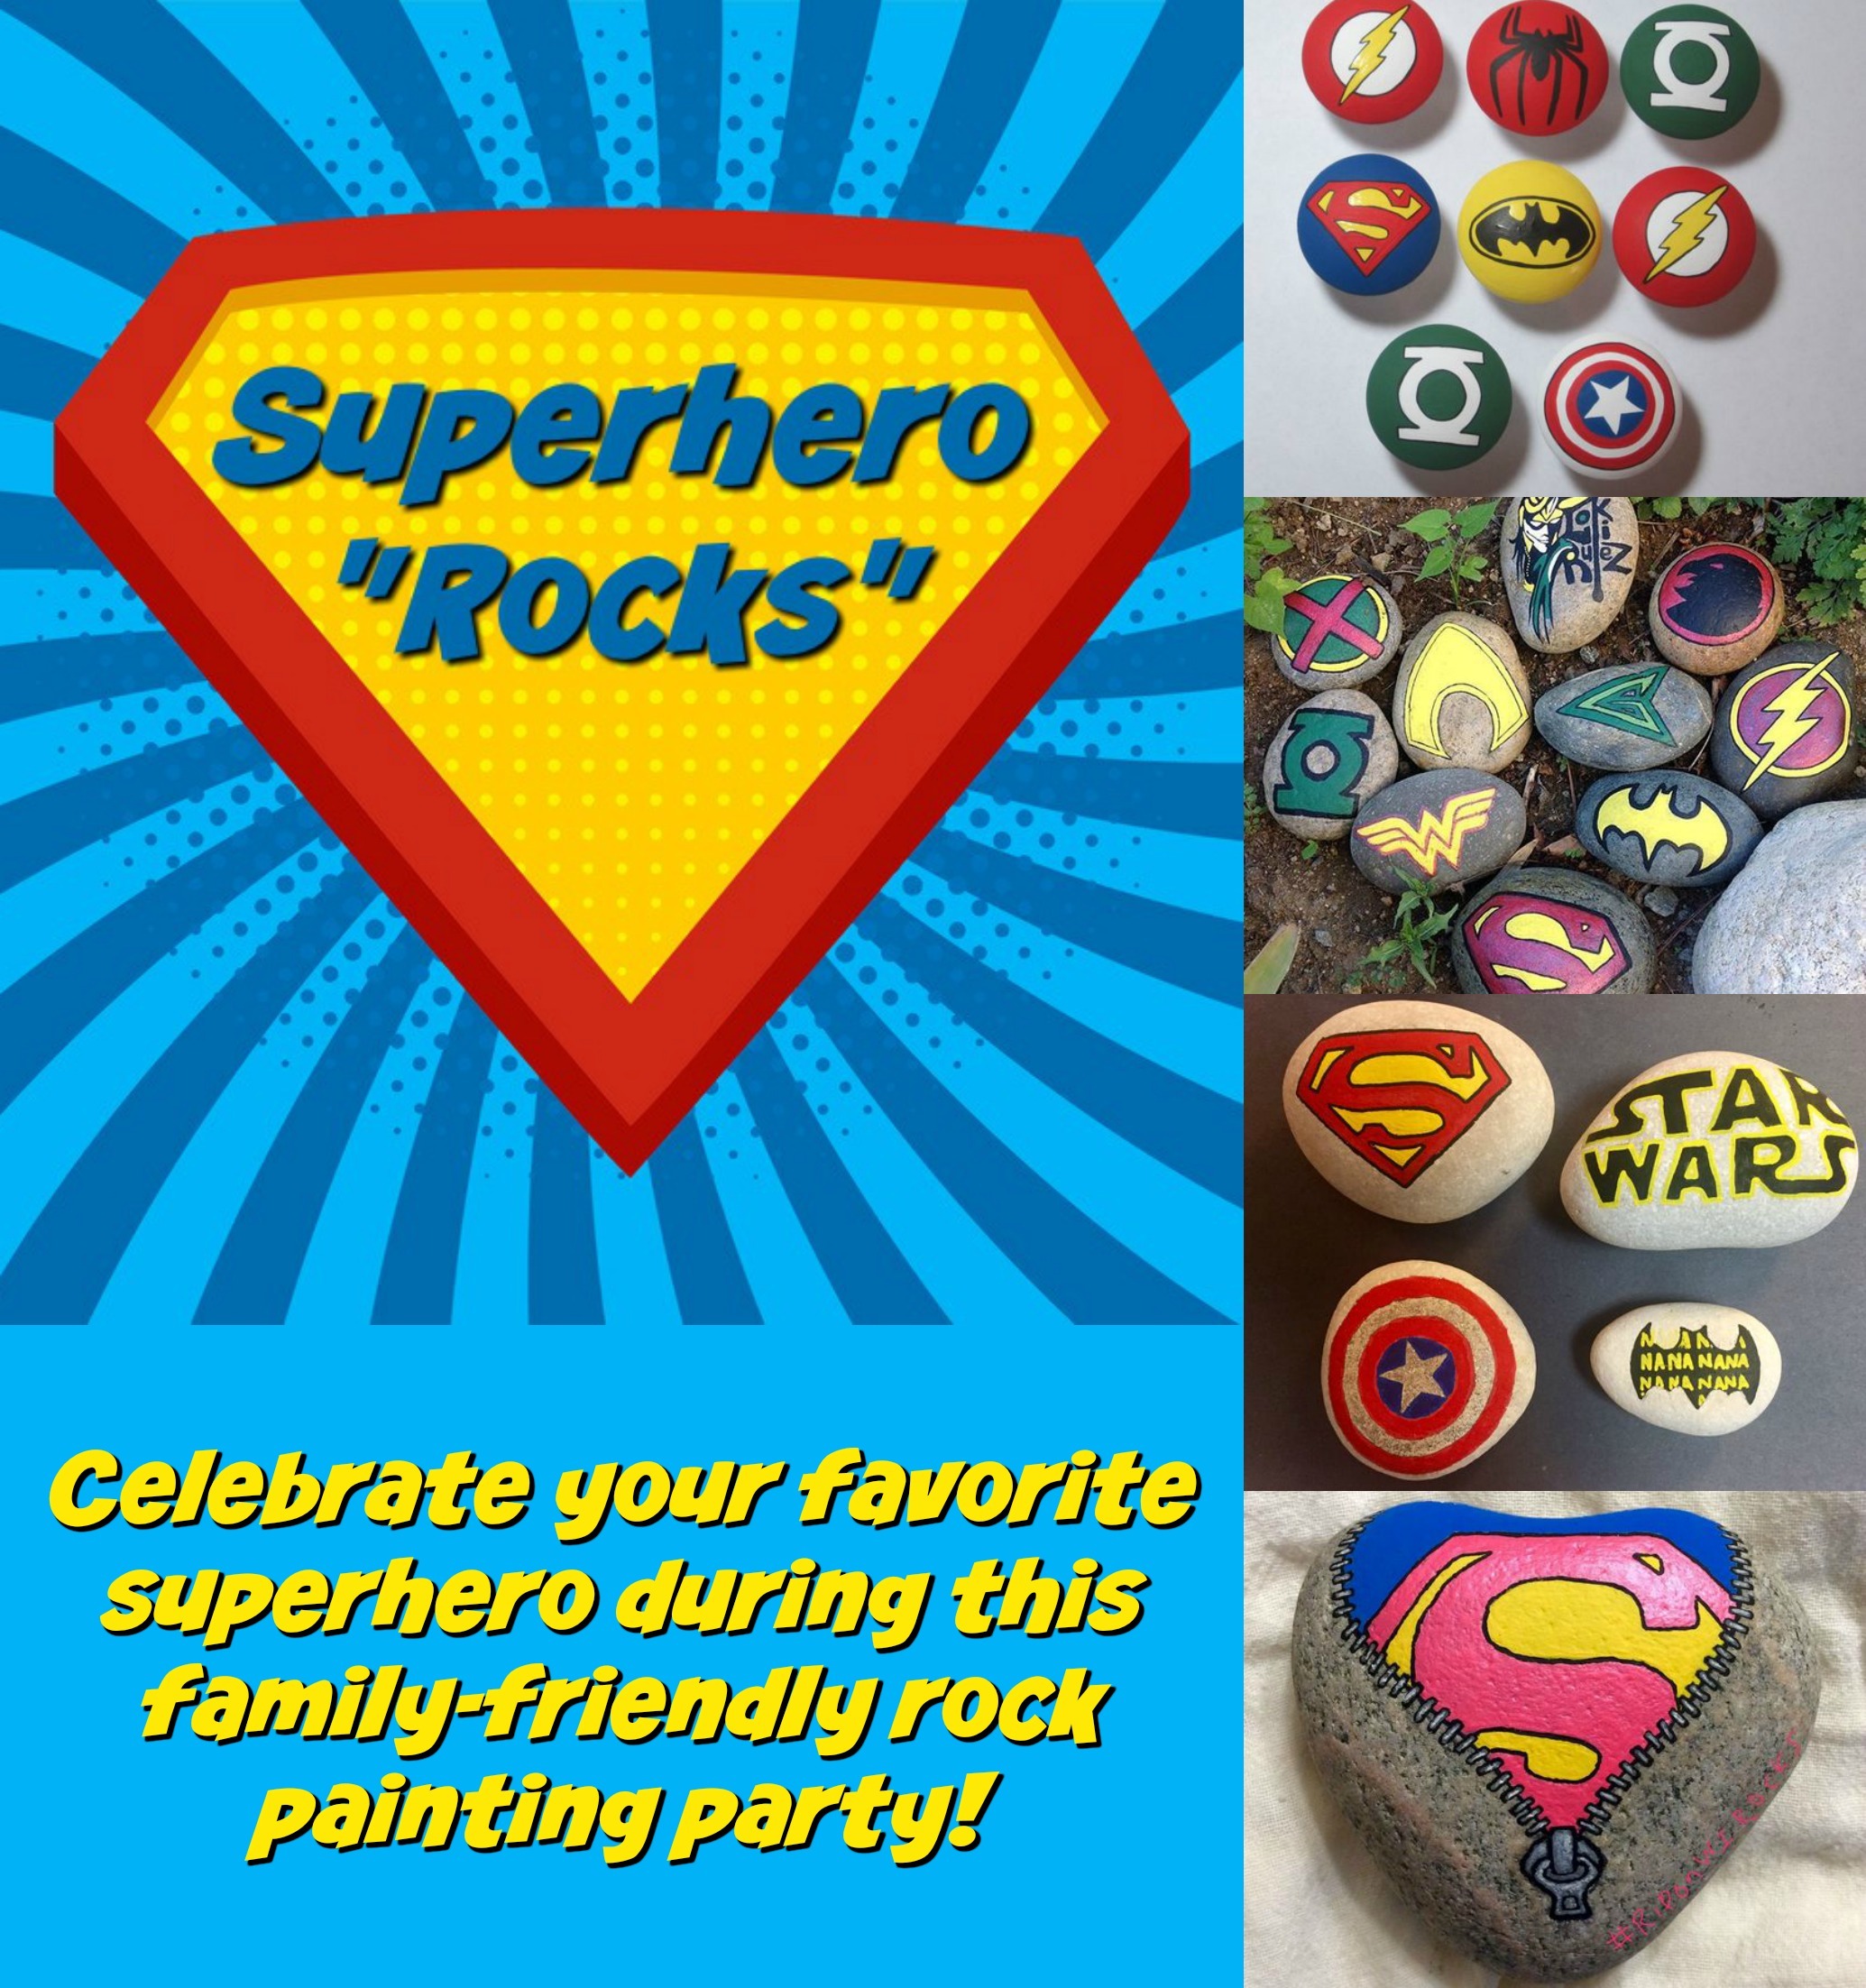 Superhero ROCKS